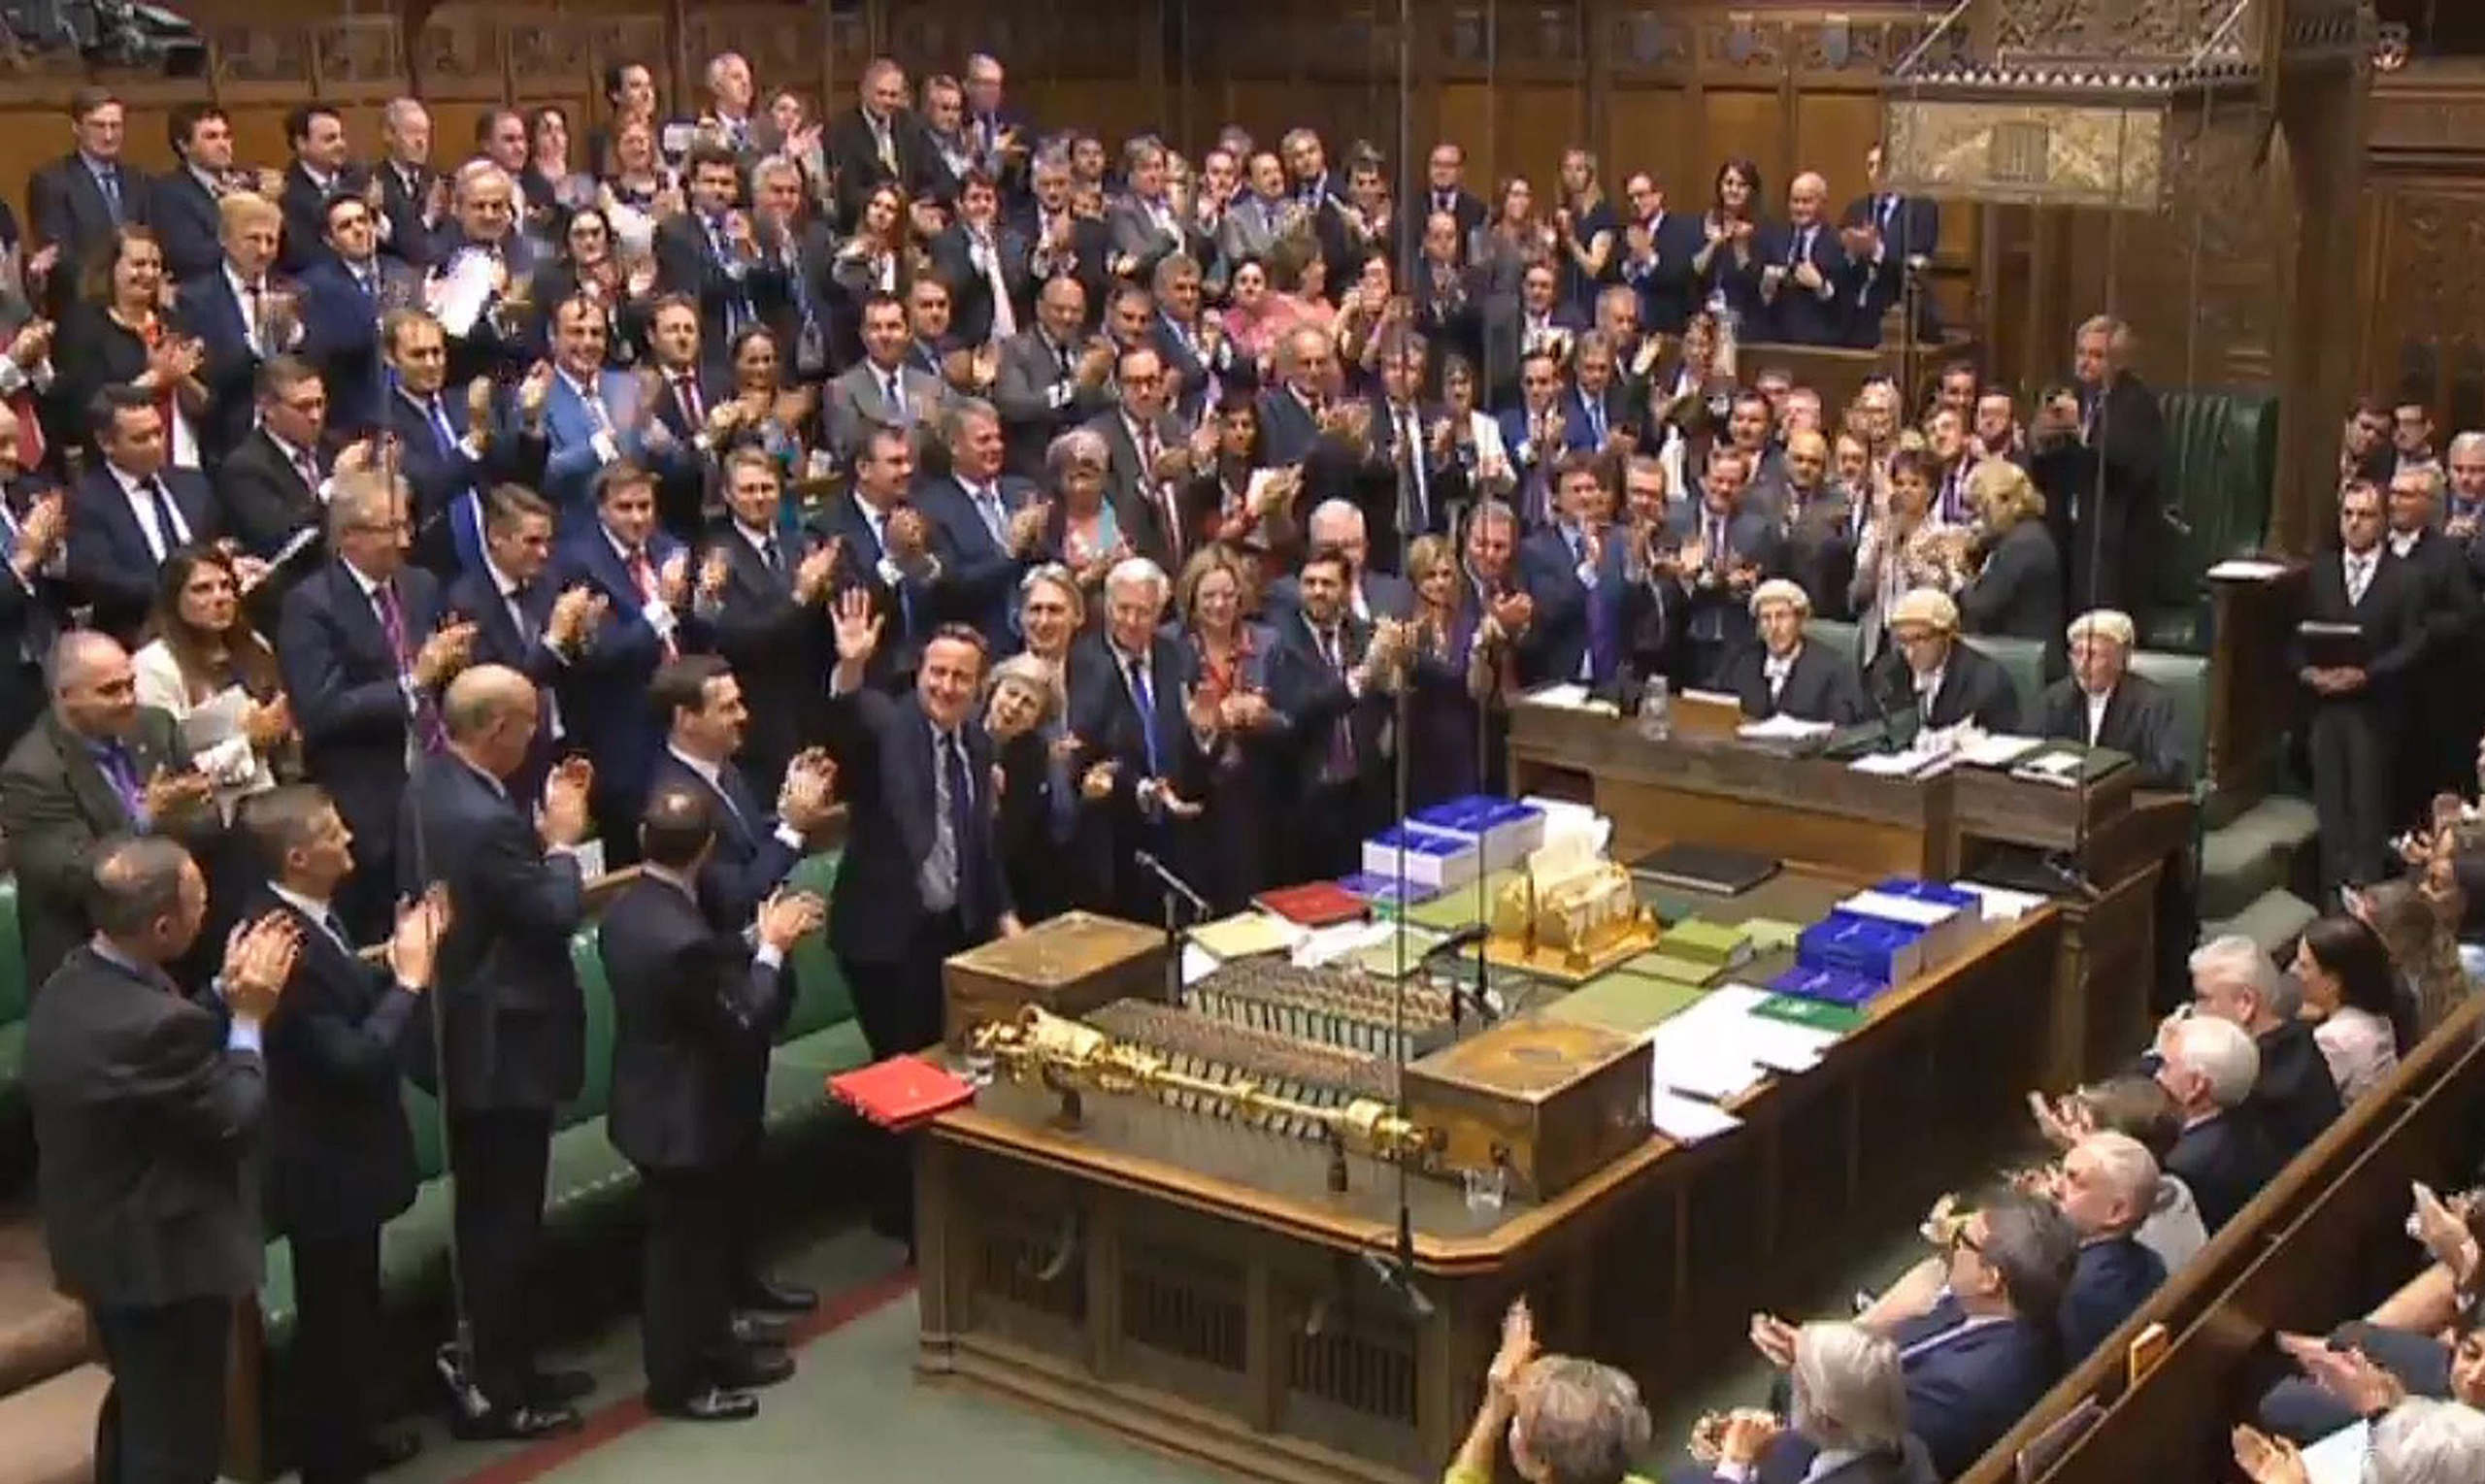 A British Parliament handout photo released shows Conservative Members of Parliament giving outgoing Prime Minister David Cameron a standing ovation after finishing his last Prime Minister's Questions in the House of Commons, in London on July 13, 2016.